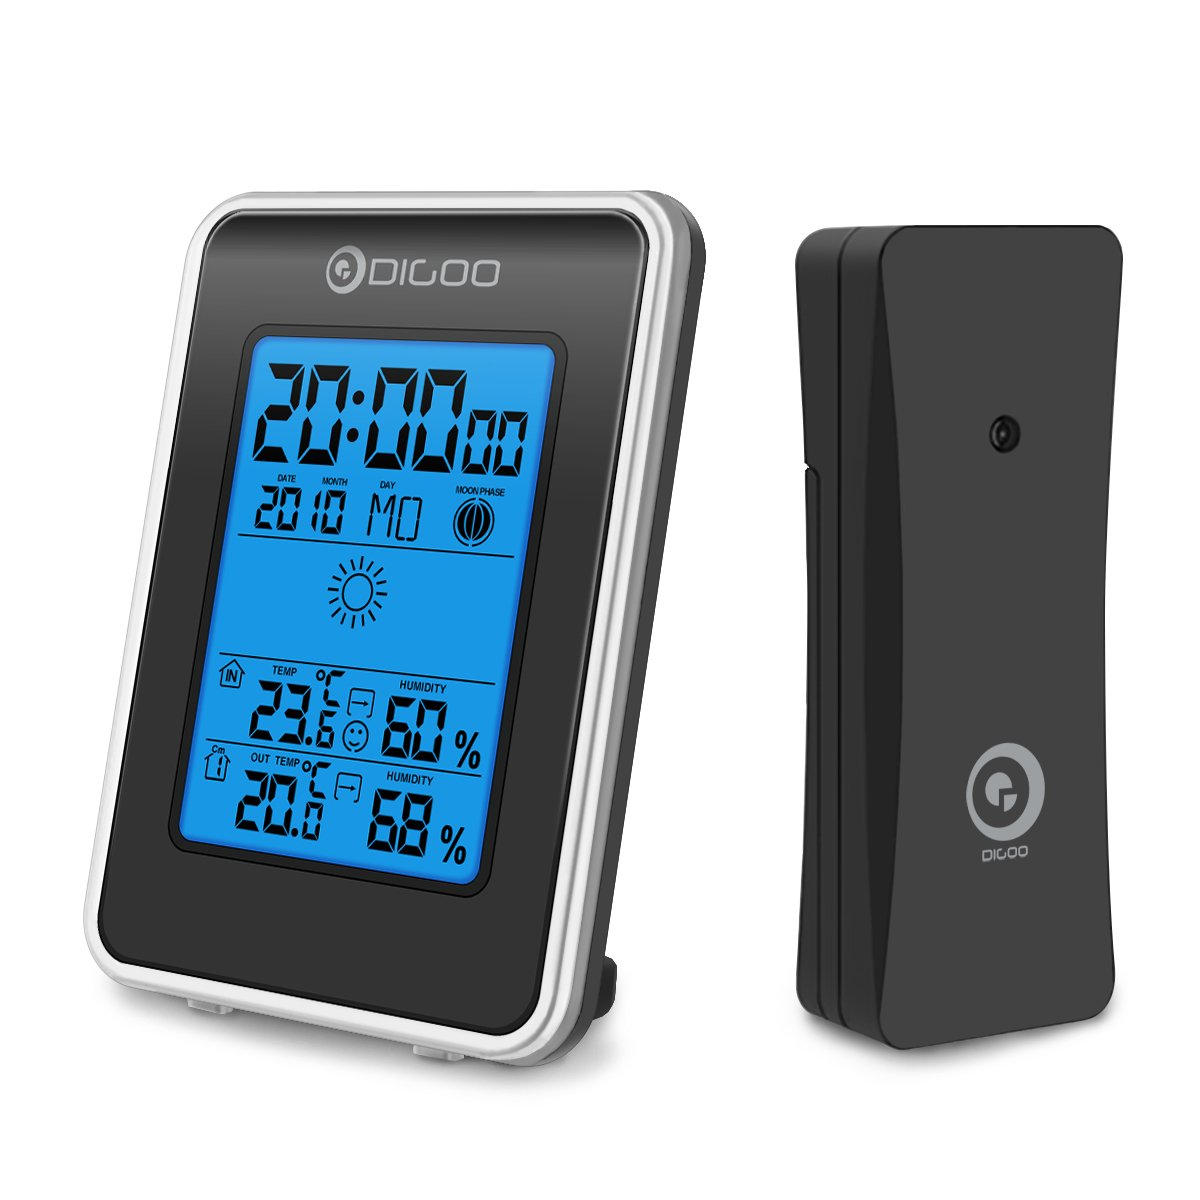 DIGOO TH1981 Indoor&Outdoor Thermometer, Weather Station Blue Backlit Hygrometer, Outdoor Forecast Sensor with Alarm Clock by DIGOO